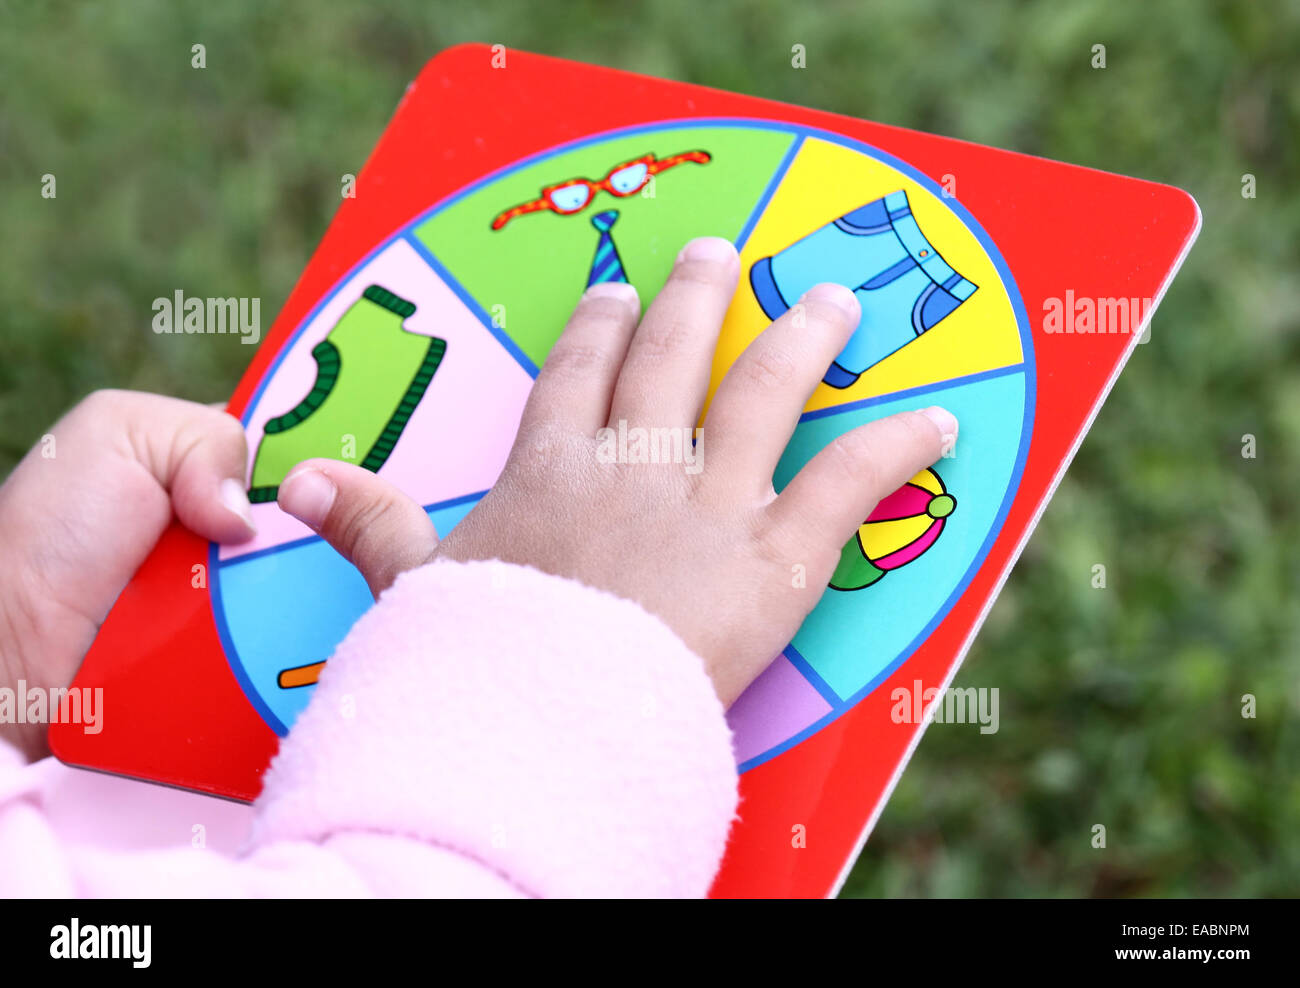 Little child hand holding board of learning game. Focus on hand and game table Stock Photo